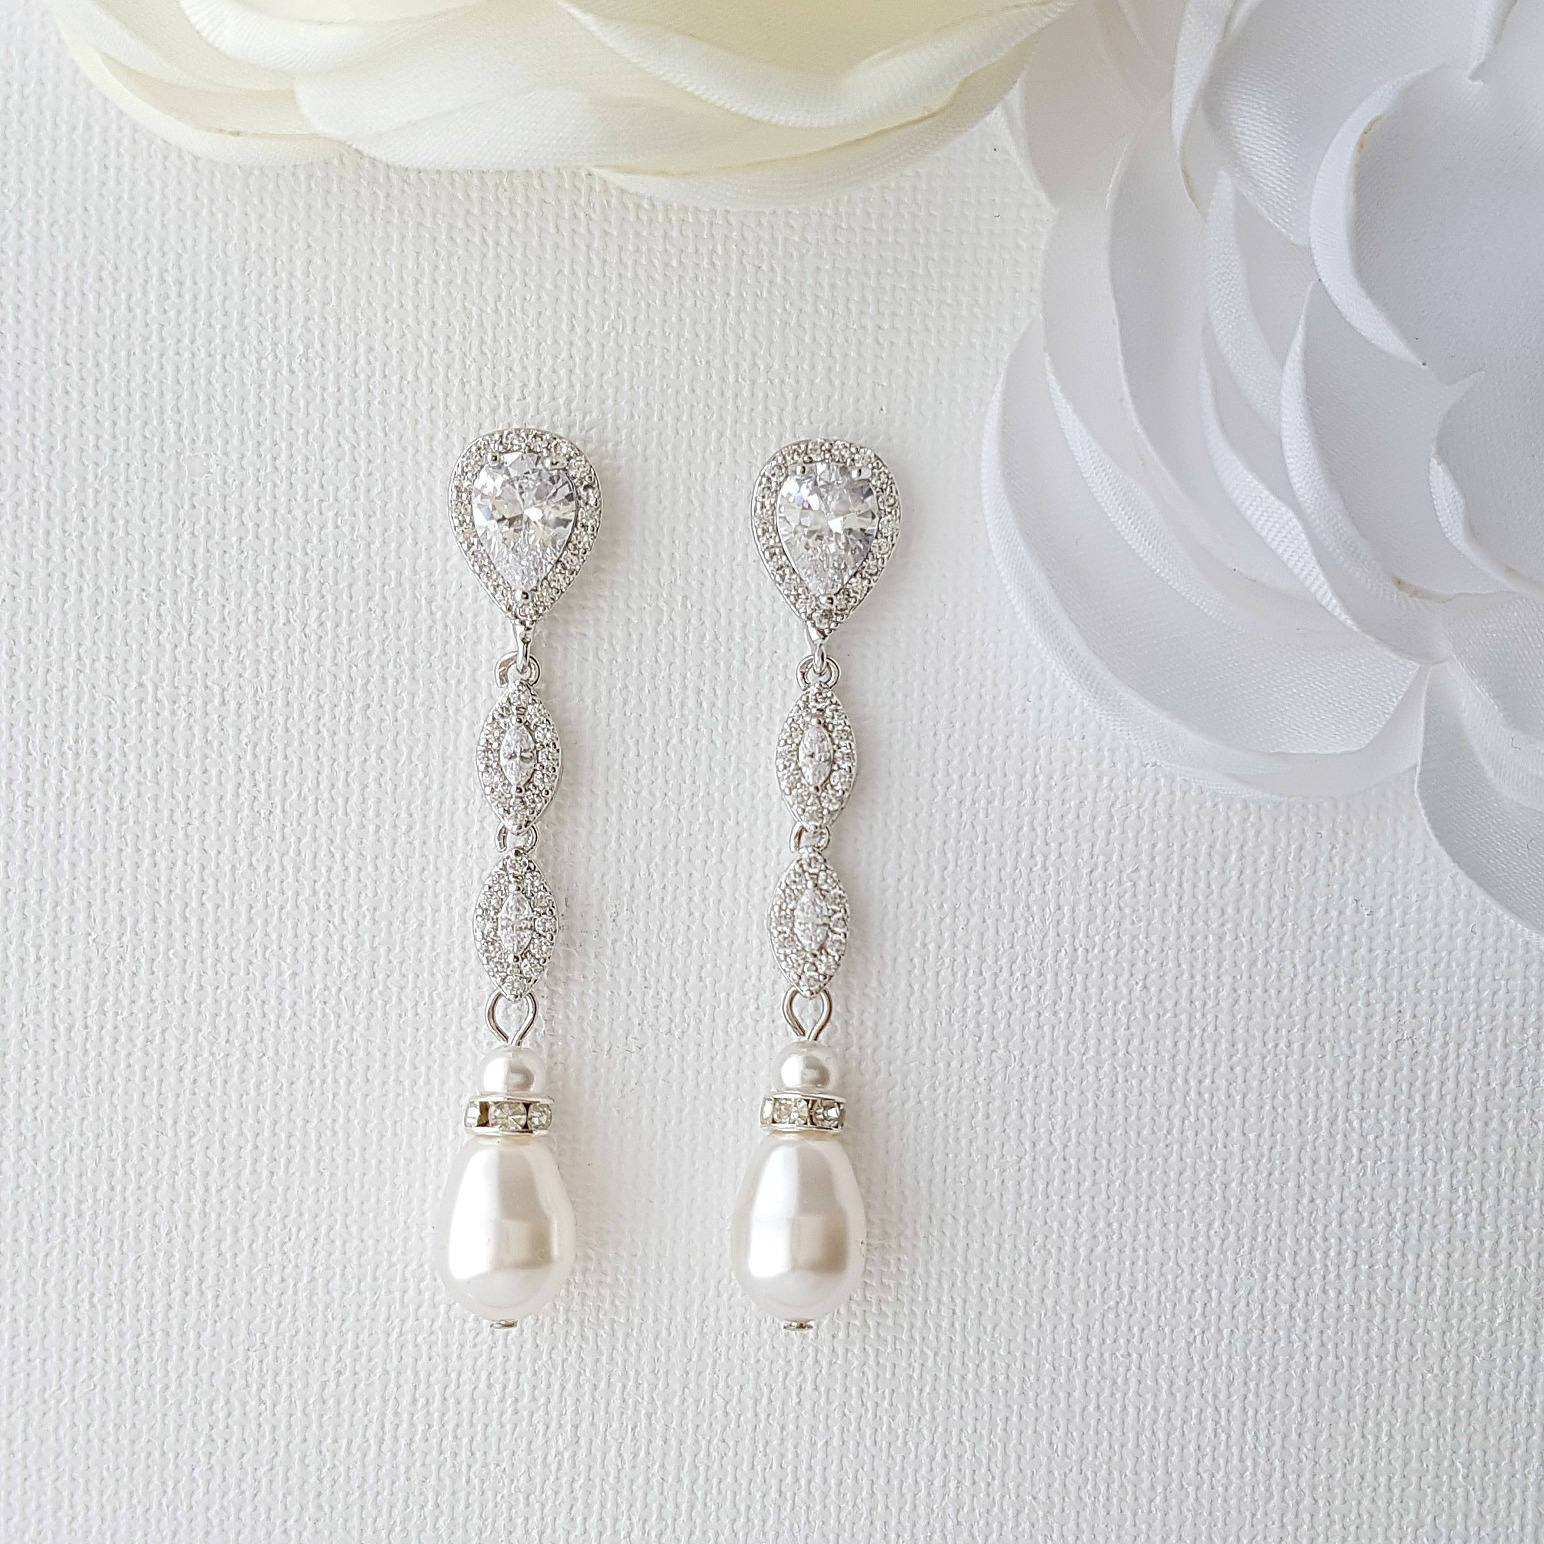 Silver Pearl Earrings For Wedding and Evening Wear